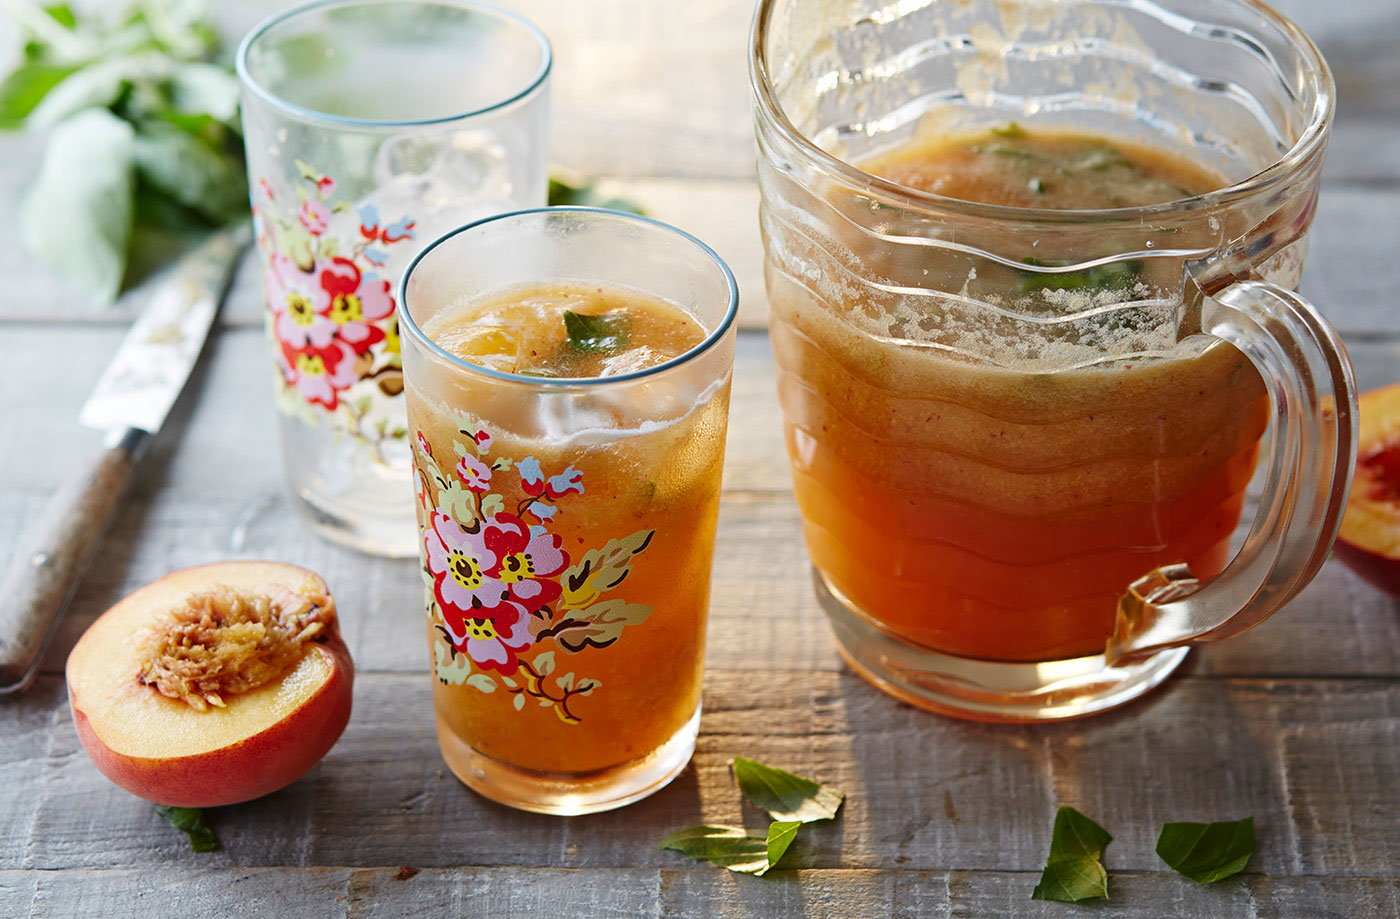 Peach and basil agua fresca  recipe